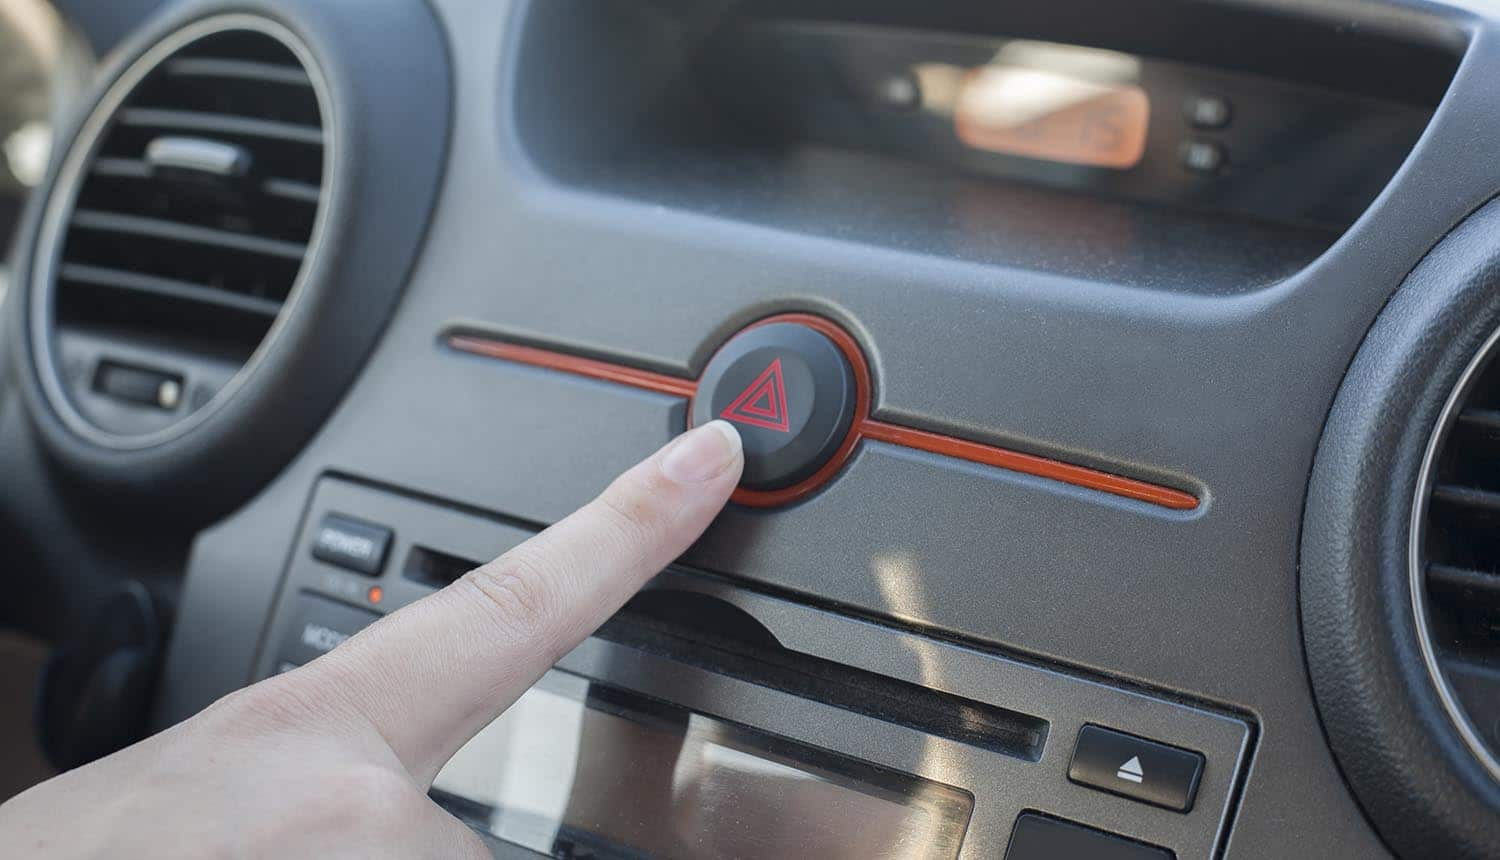 Woman inside car pressing hazard lights button showing the threats of cyber attacks on connected cars